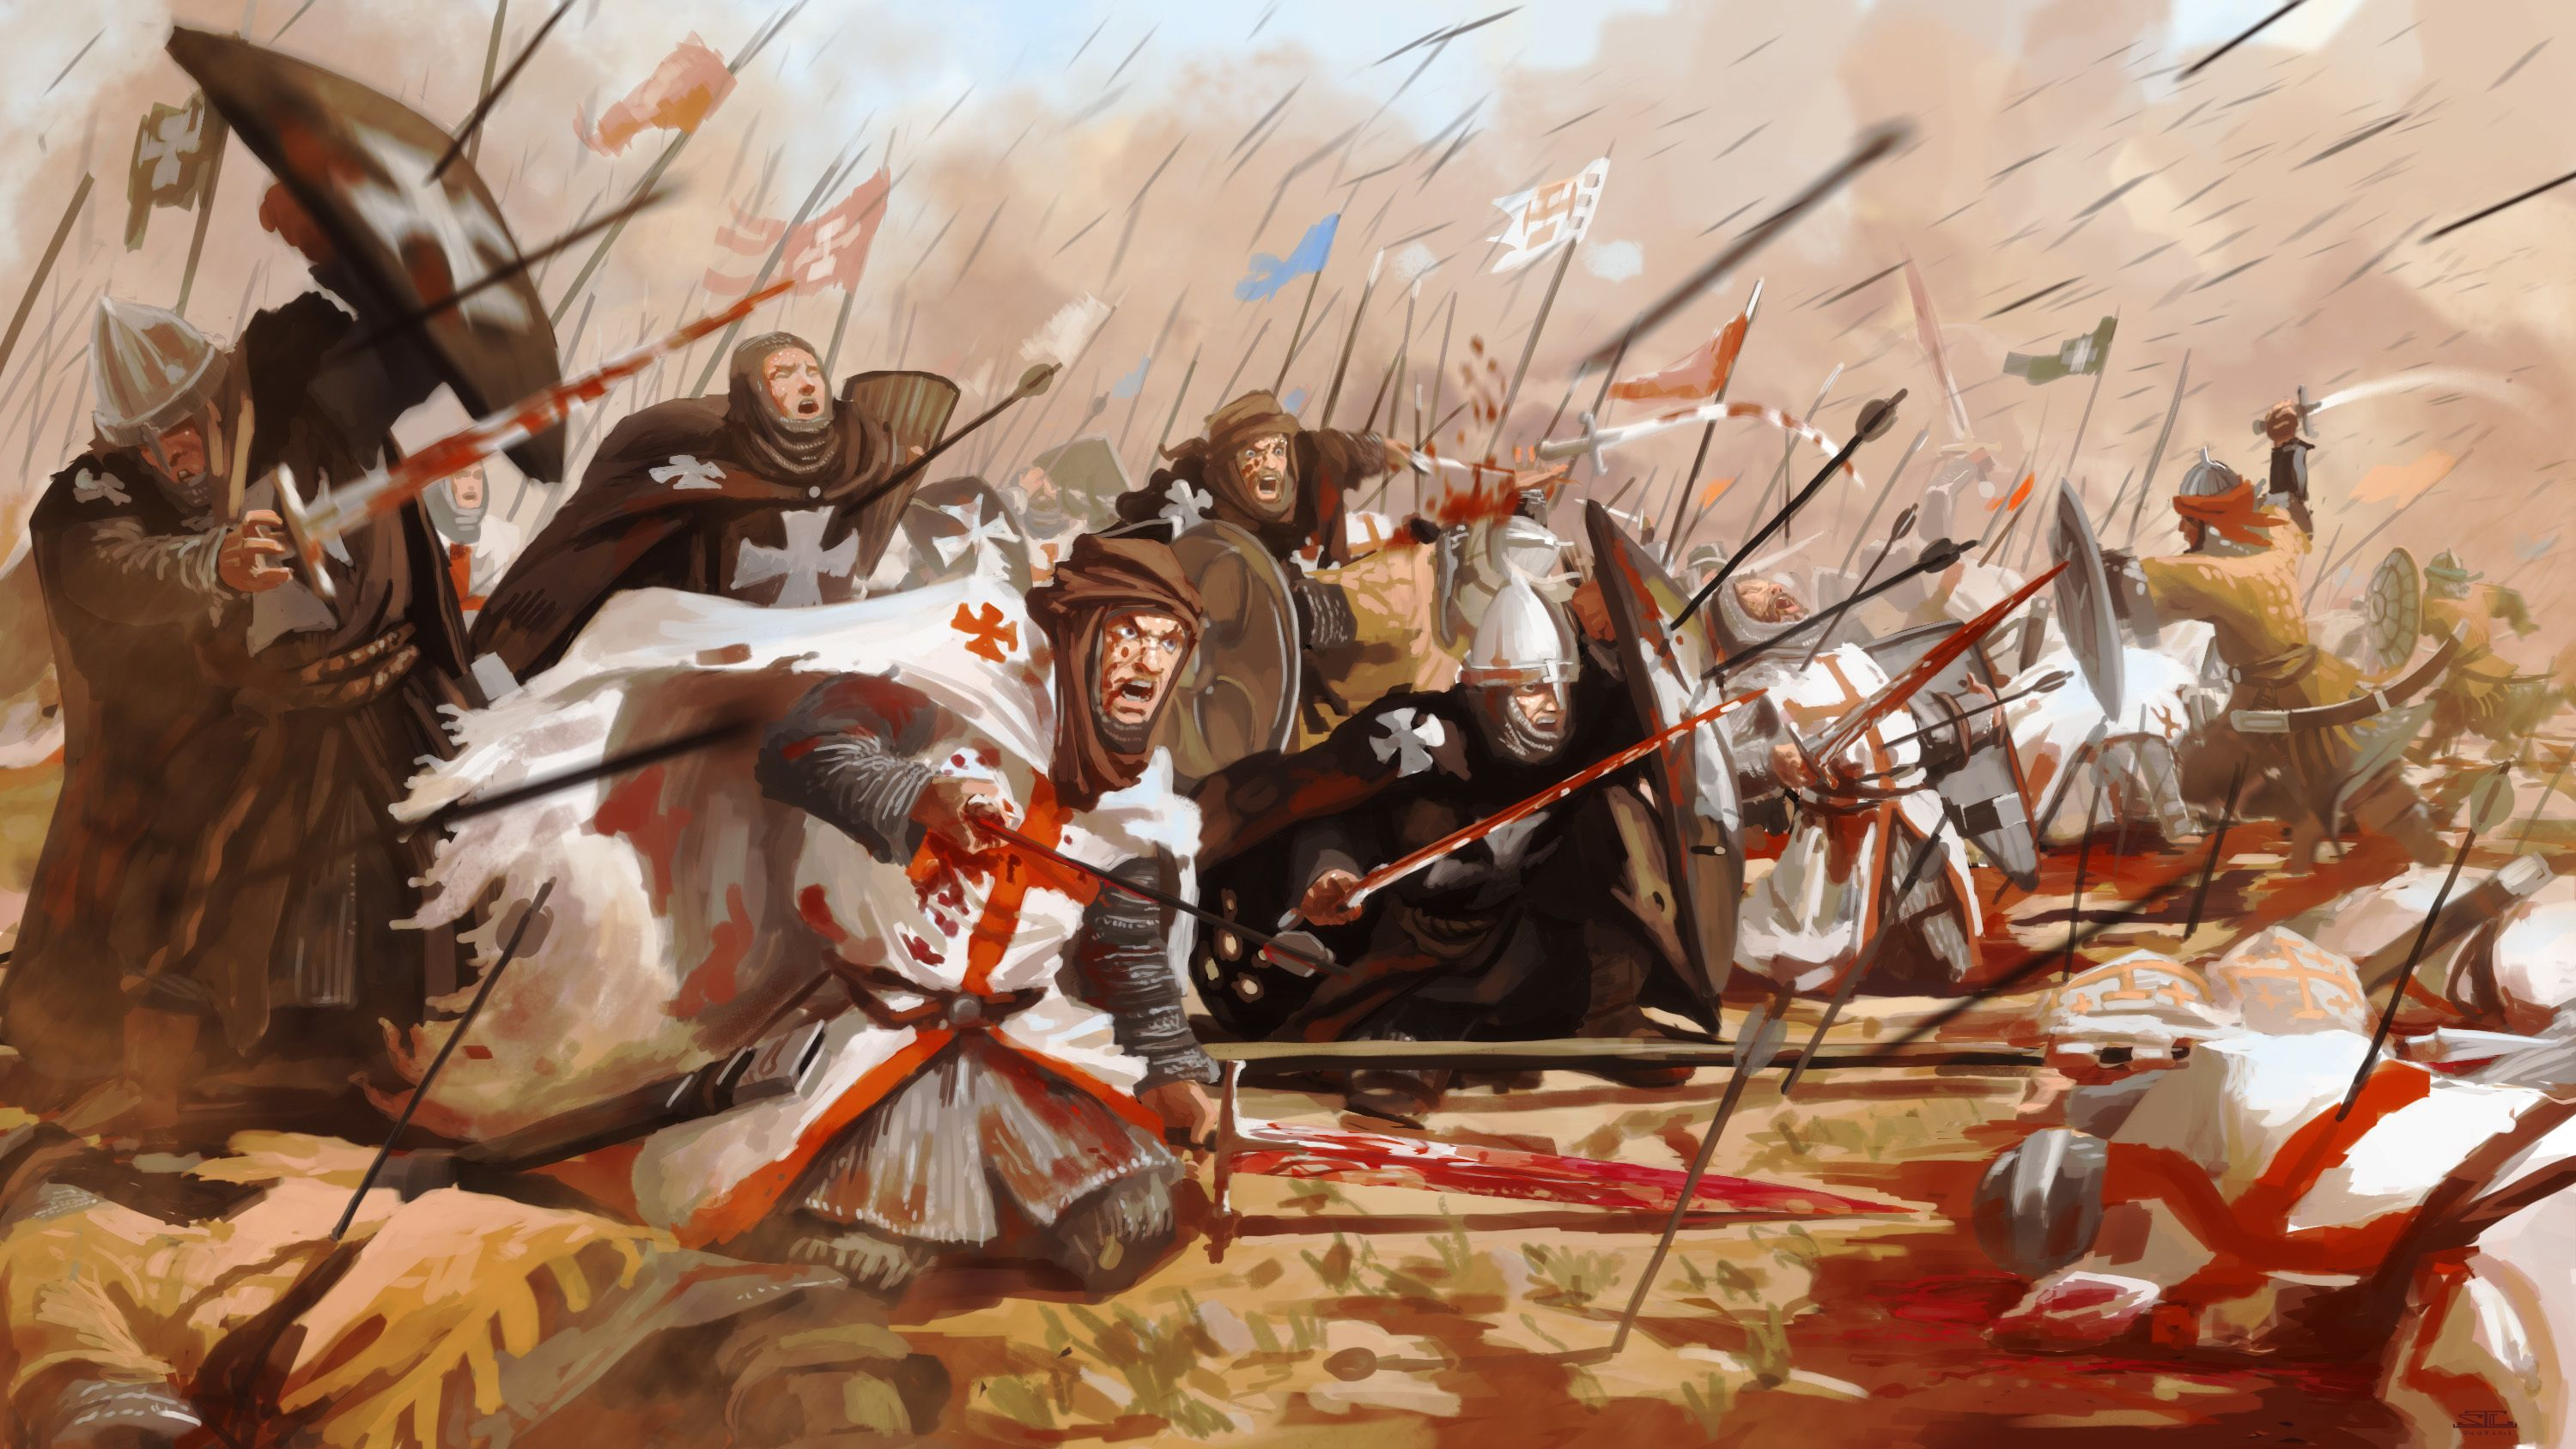 Battles Warriors Middle Ages Fantasy wallpaper | 3000x1688 | 77951 ...